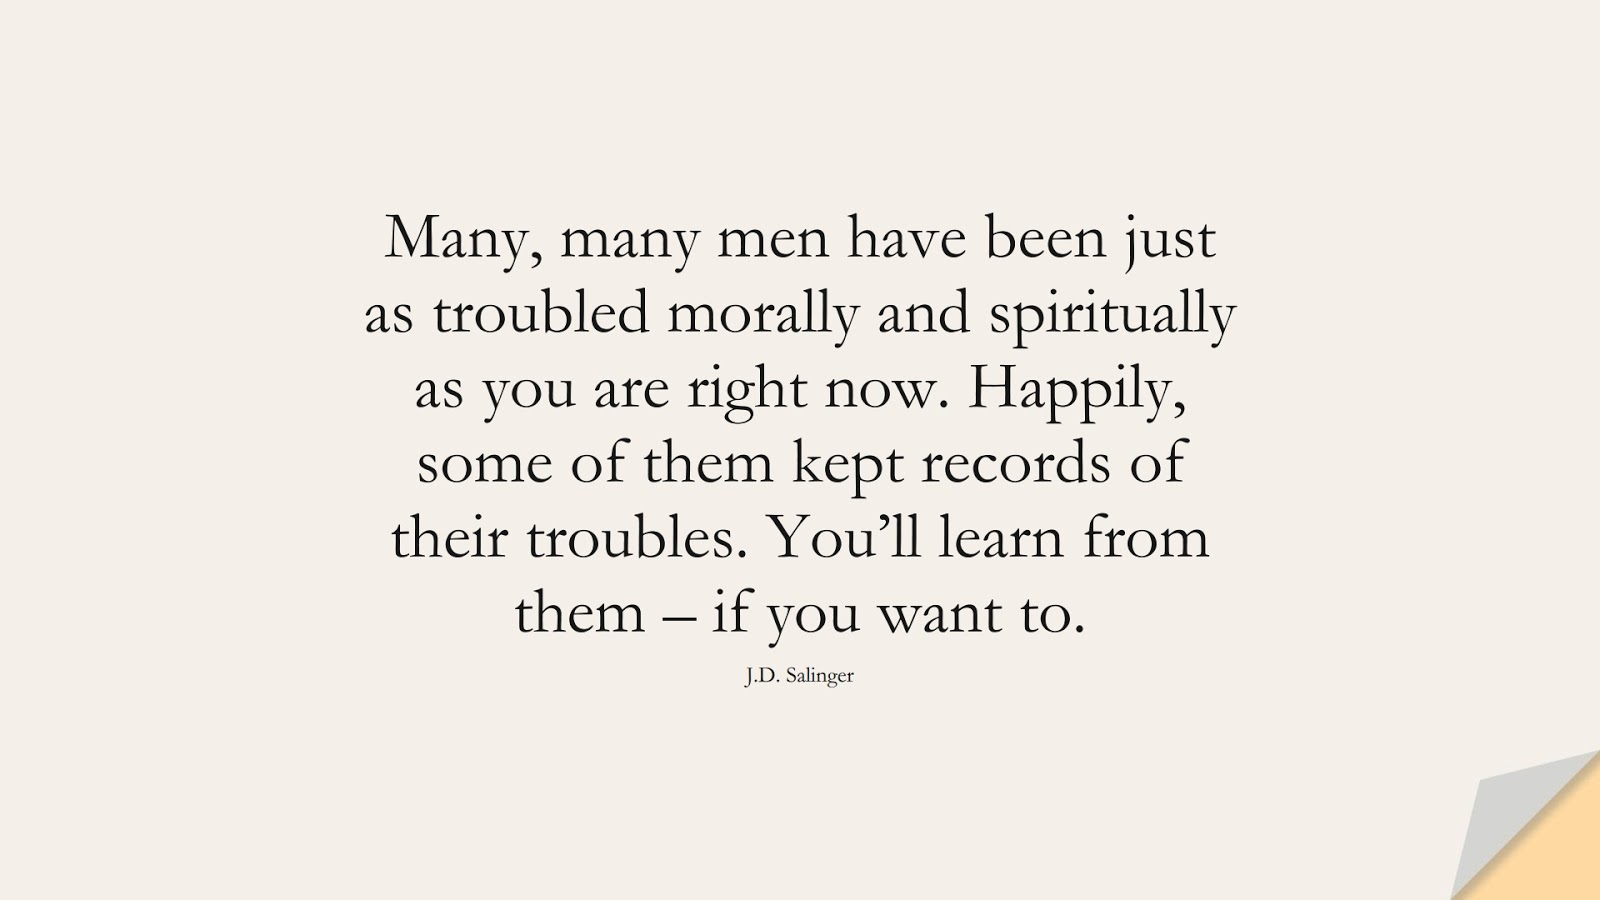 Many, many men have been just as troubled morally and spiritually as you are right now. Happily, some of them kept records of their troubles. You'll learn from them – if you want to. (J.D. Salinger);  #DepressionQuotes